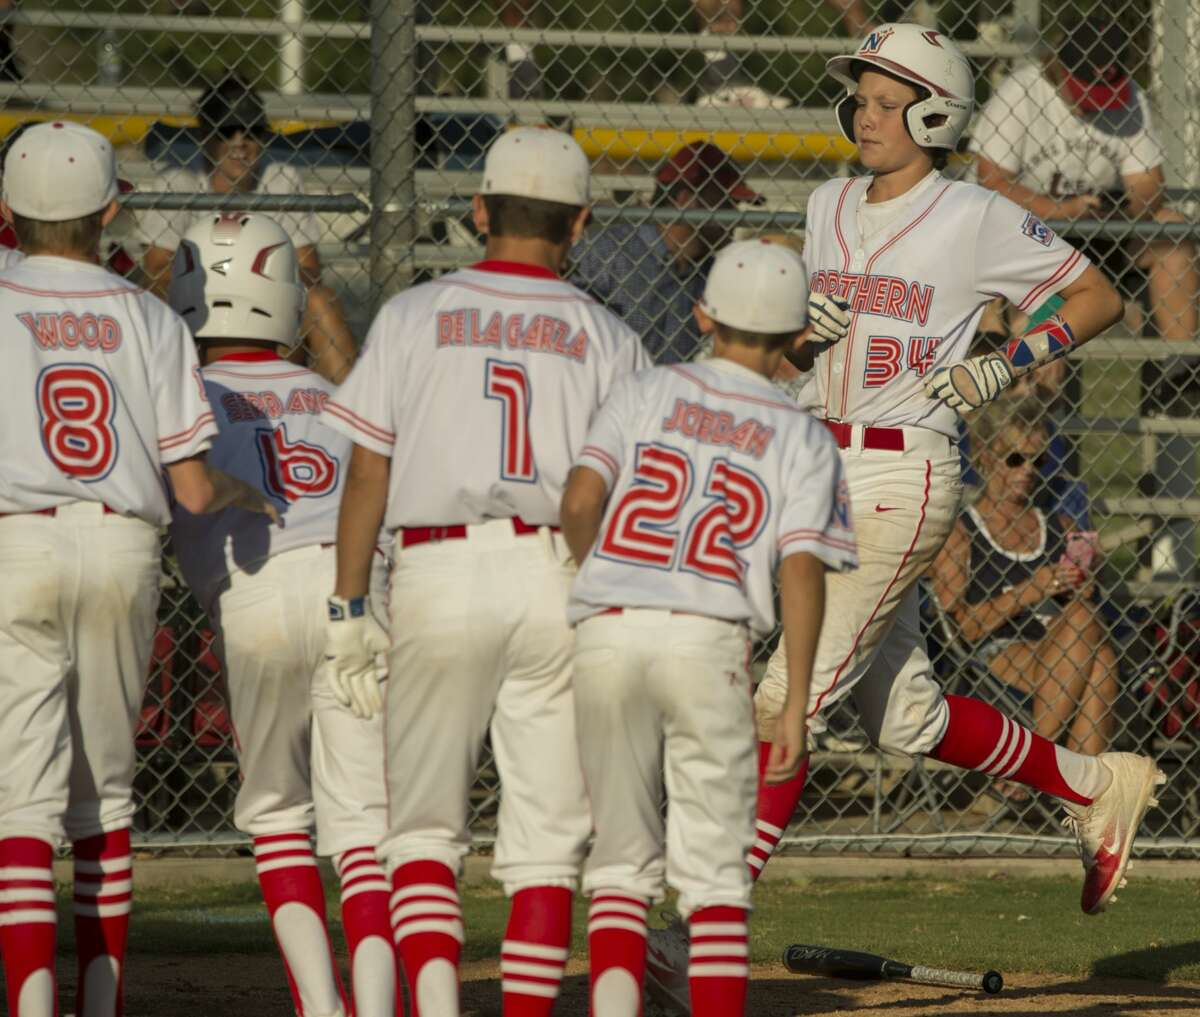 Midland Northern team members congratulate Chase Shores as he crosses home on a home run 7/05/17 against Lubbock Western in the Texas West Section 1 10-12 year old playoff game at John P. Butler Sports Complex. Tim Fischer/Reporter-Telegram